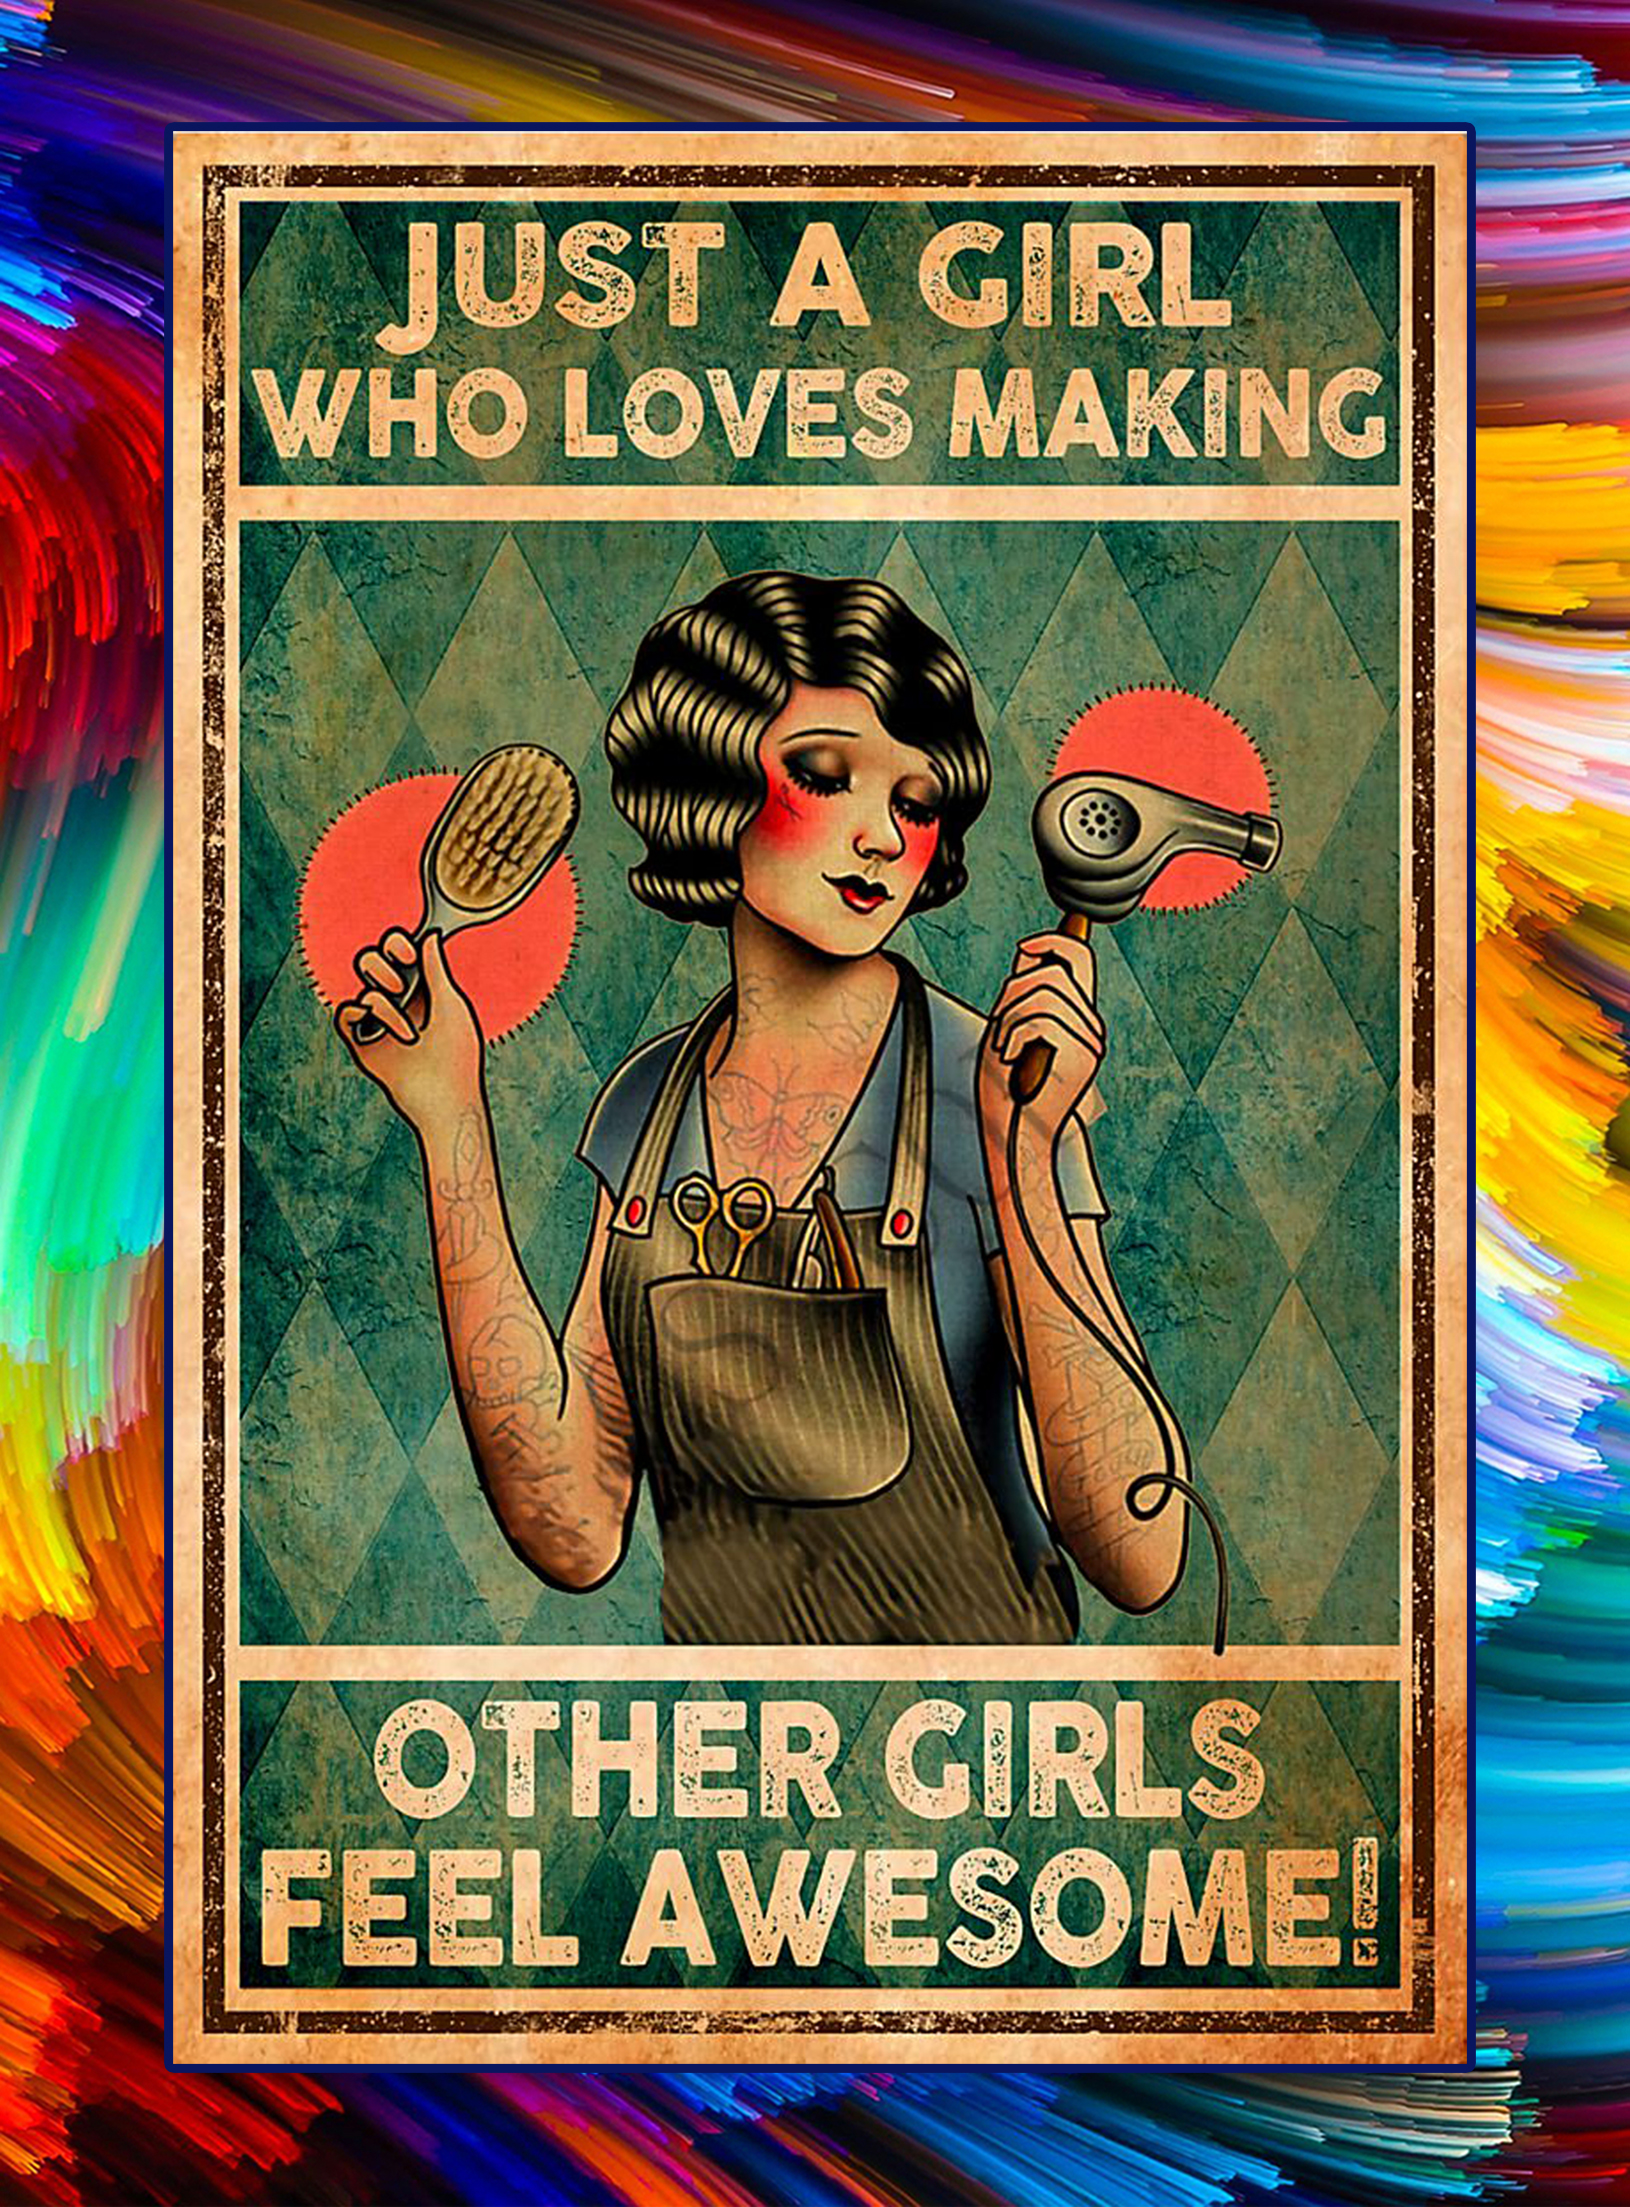 Just a girl who loves making other girls feel awesome poster - A2